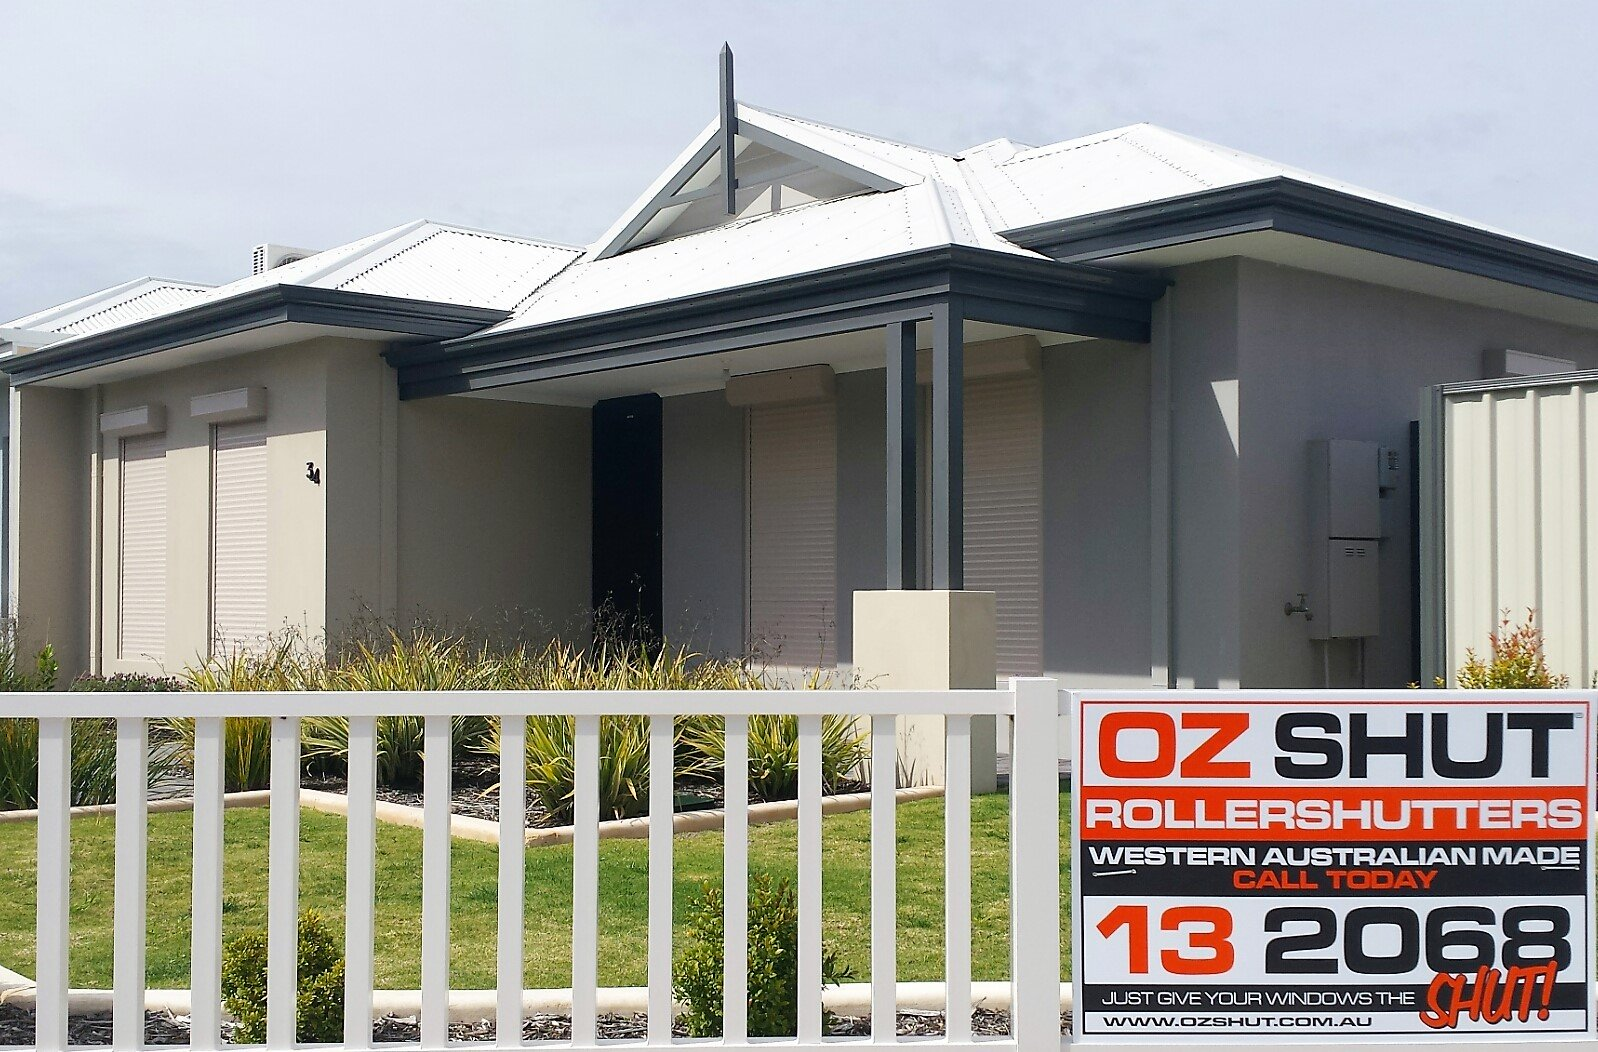 My Ozshut Roller Shutters Have Really Helped Keep My House